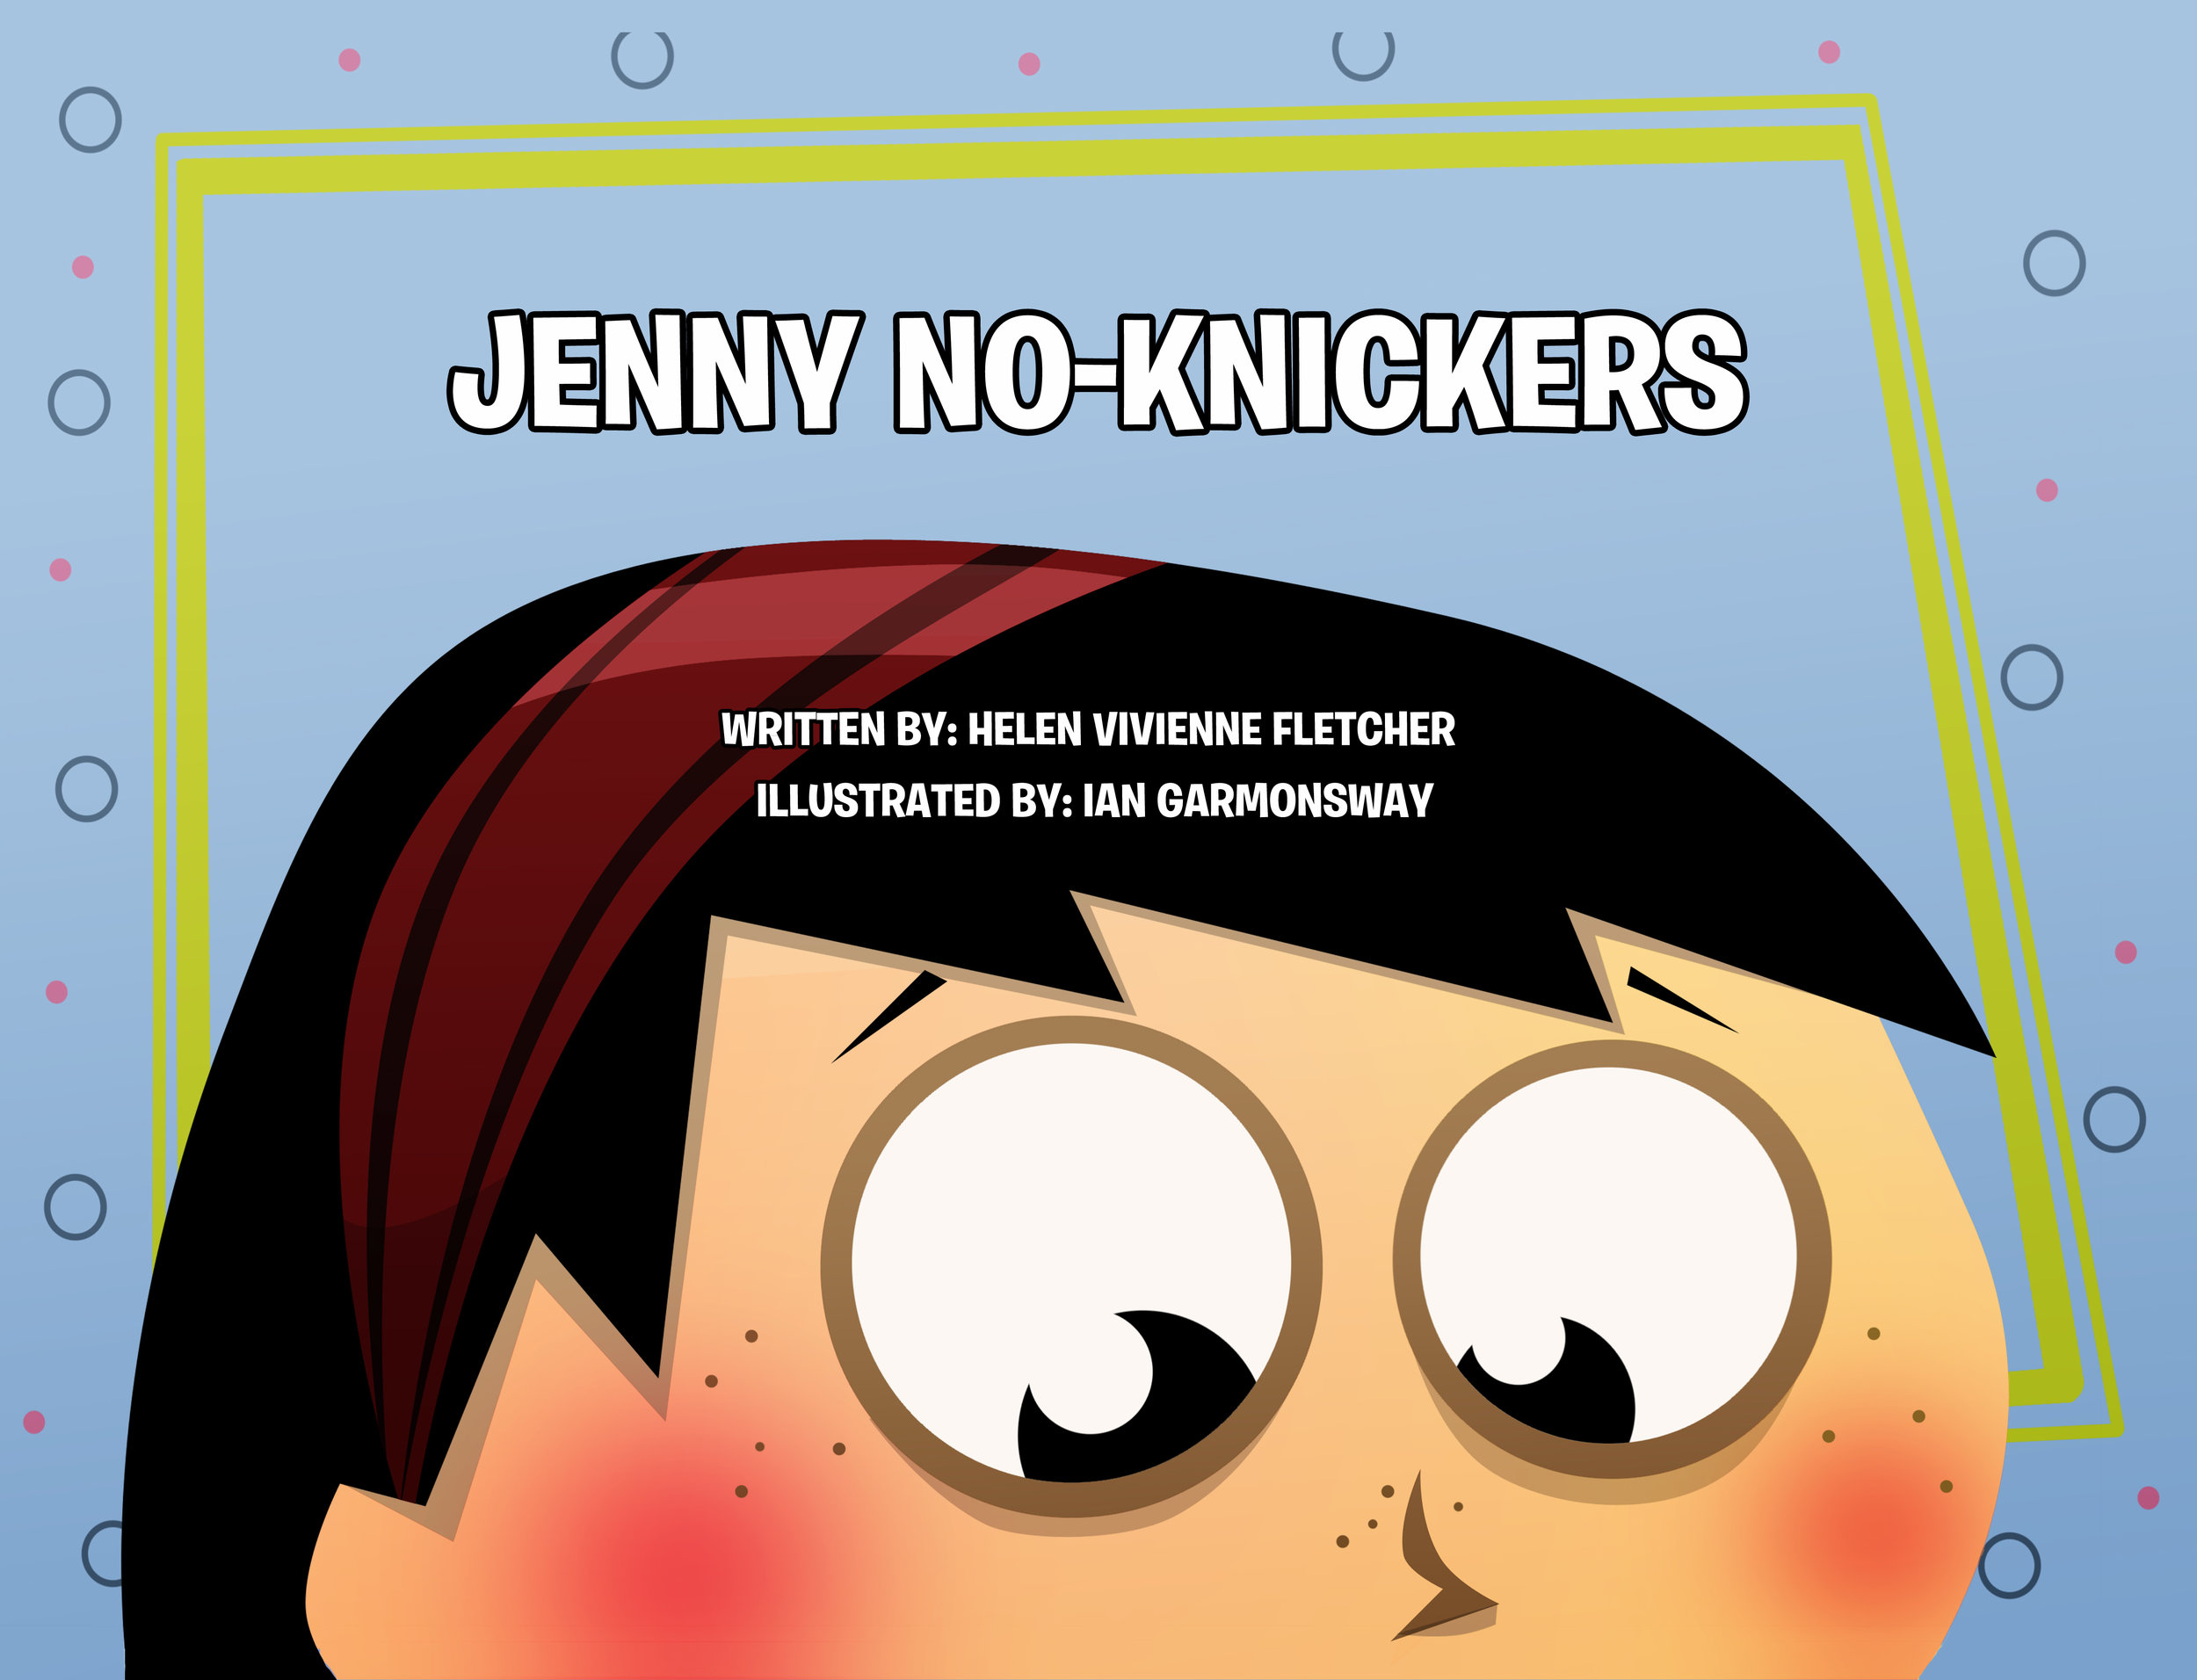 Jenny No-Knickers - NZ$20  It's washing day at Jenny's house, but oh no! The elastic in all of Jenny's knickers melts in the dryer. How will Jenny solve the no-knickers problem?